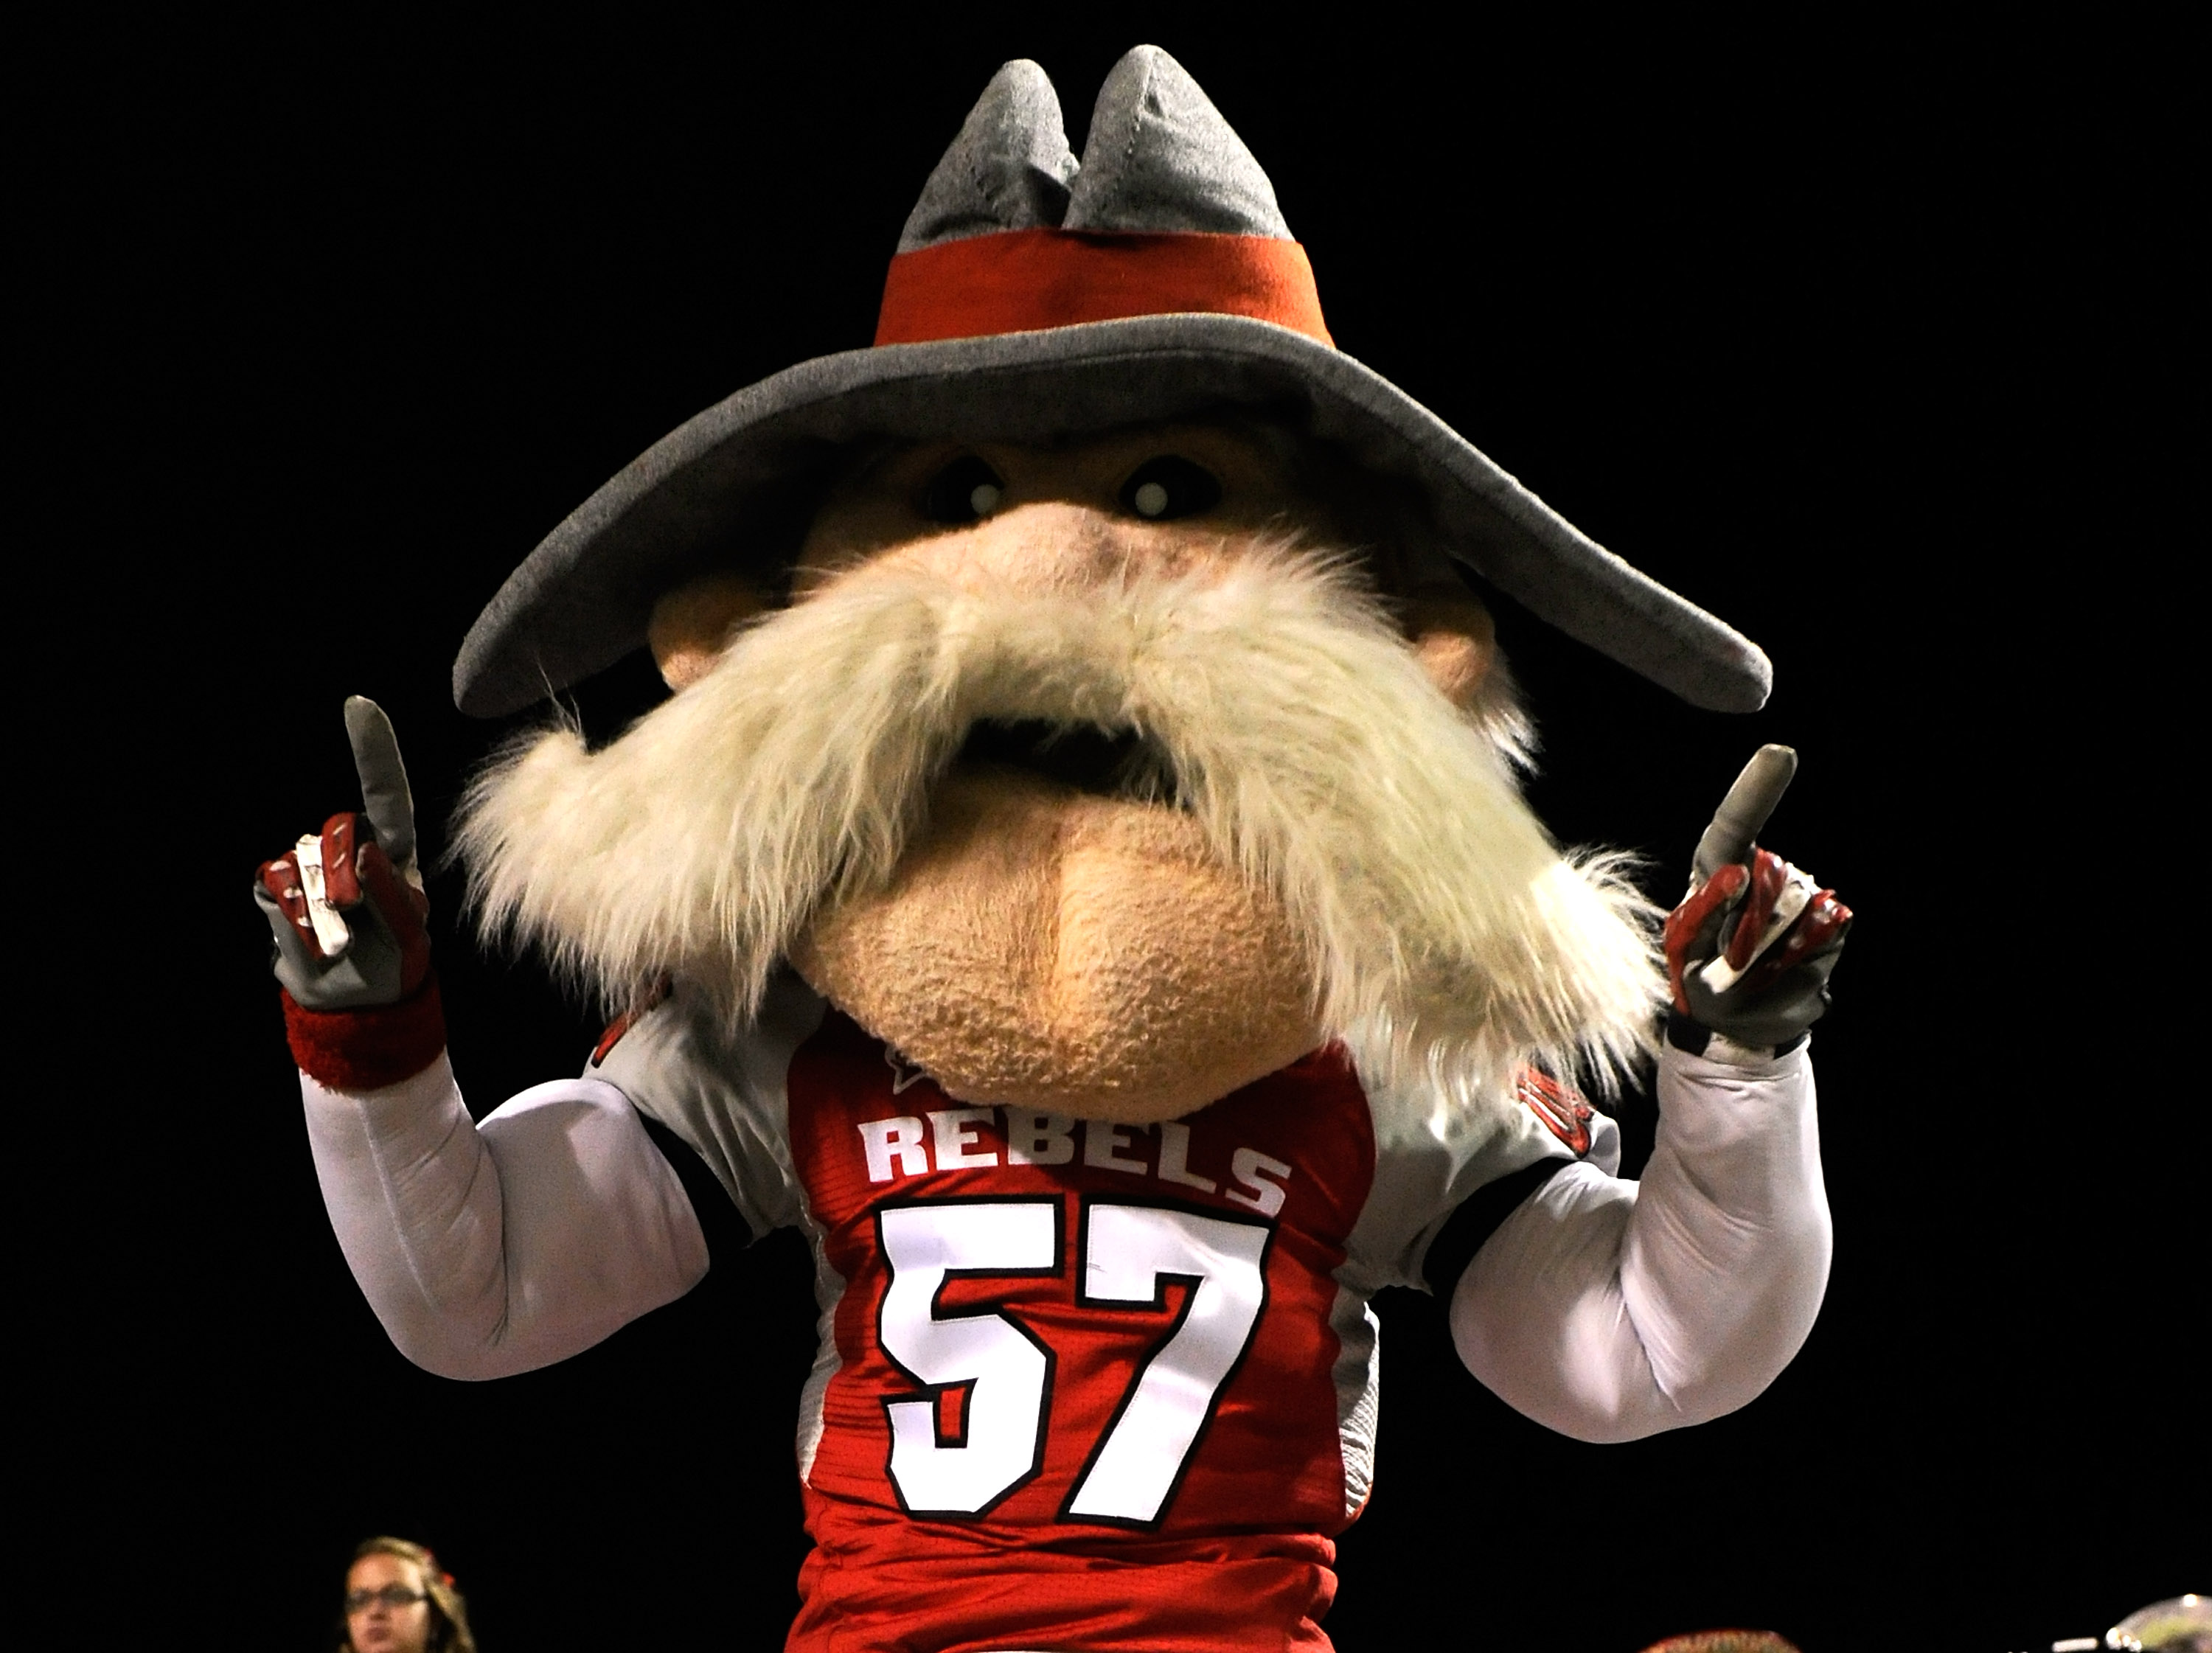 LAS VEGAS - OCTOBER 30:  UNLV Rebels mascot 'Hey Reb' dances in the stands during the team's 48-6 loss to the Texas Christian University Horned Frogs at Sam Boyd Stadium October 30, 2010 in Las Vegas, Nevada.  (Photo by Ethan Miller/Getty Images)